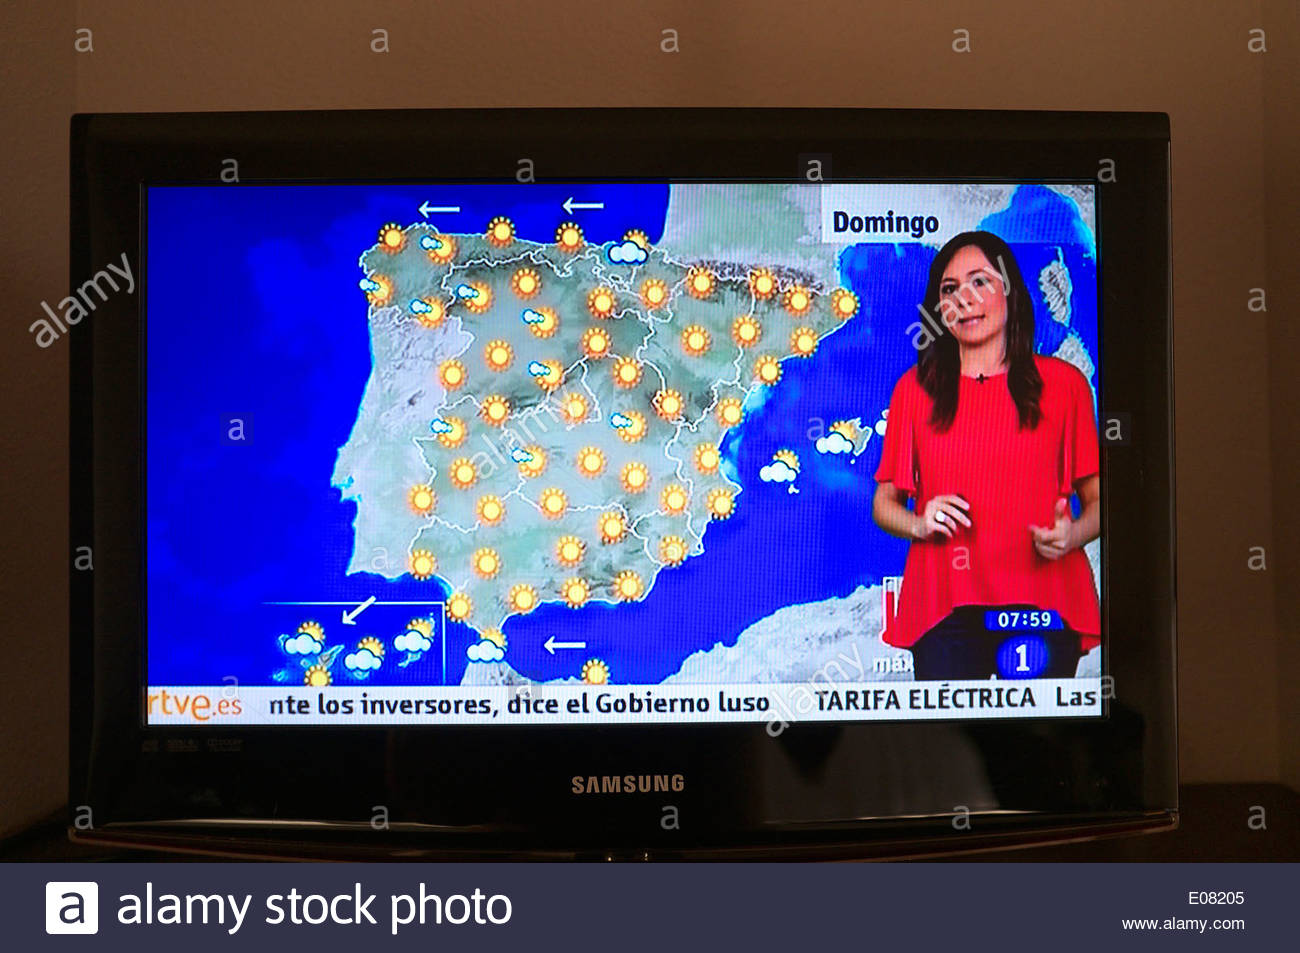 Television picture - Spanish TV weather forecast, showing a day of fine sunny weather. Spain, Europe. - Stock Image